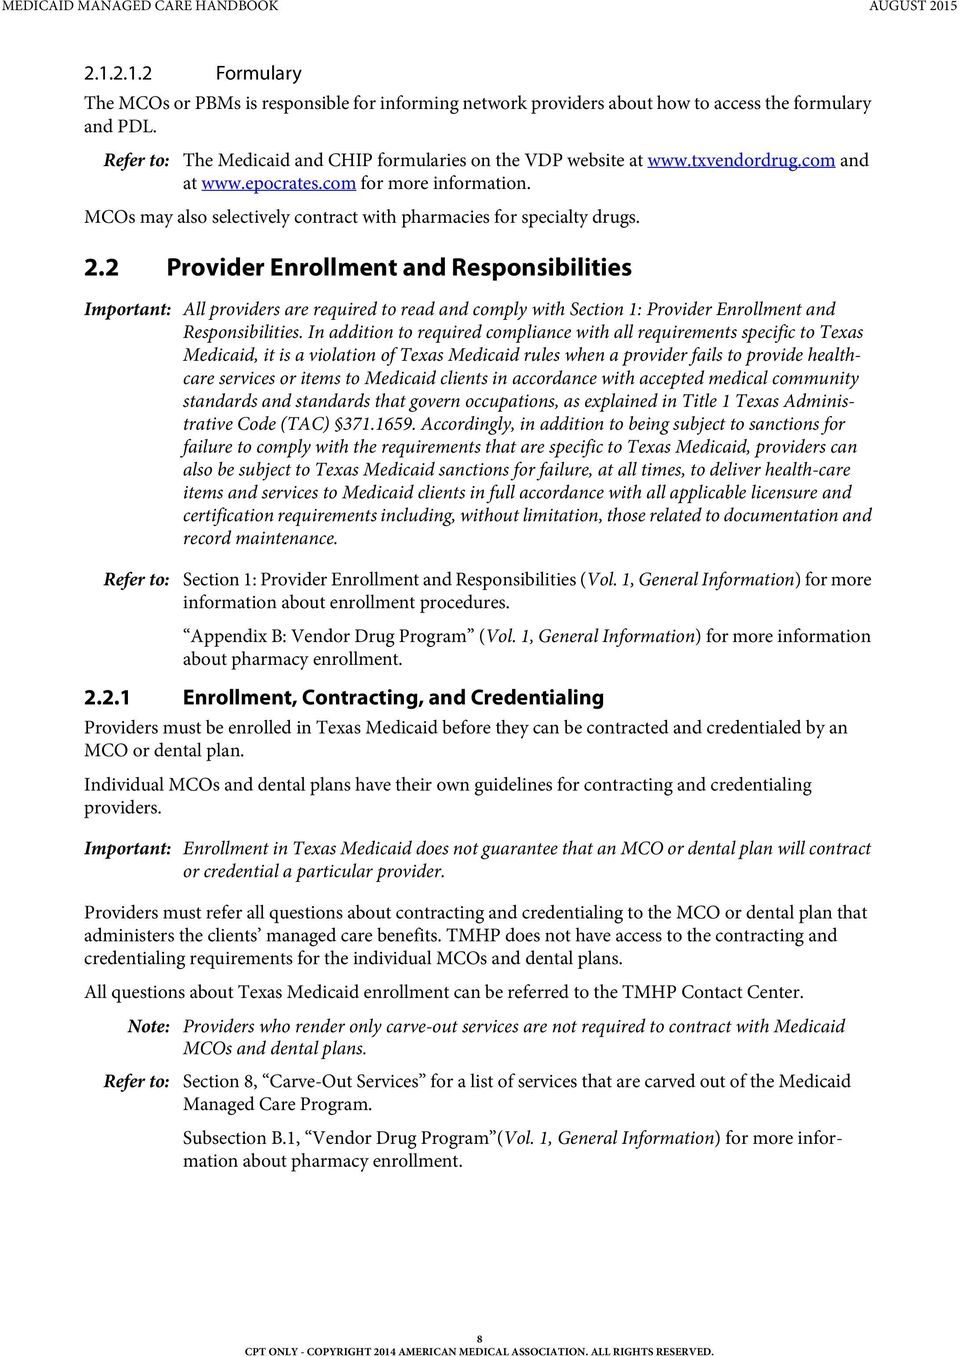 2 Provider Enrollment and Responsibilities Important: All providers are required to read and comply with Section 1: Provider Enrollment and Responsibilities.